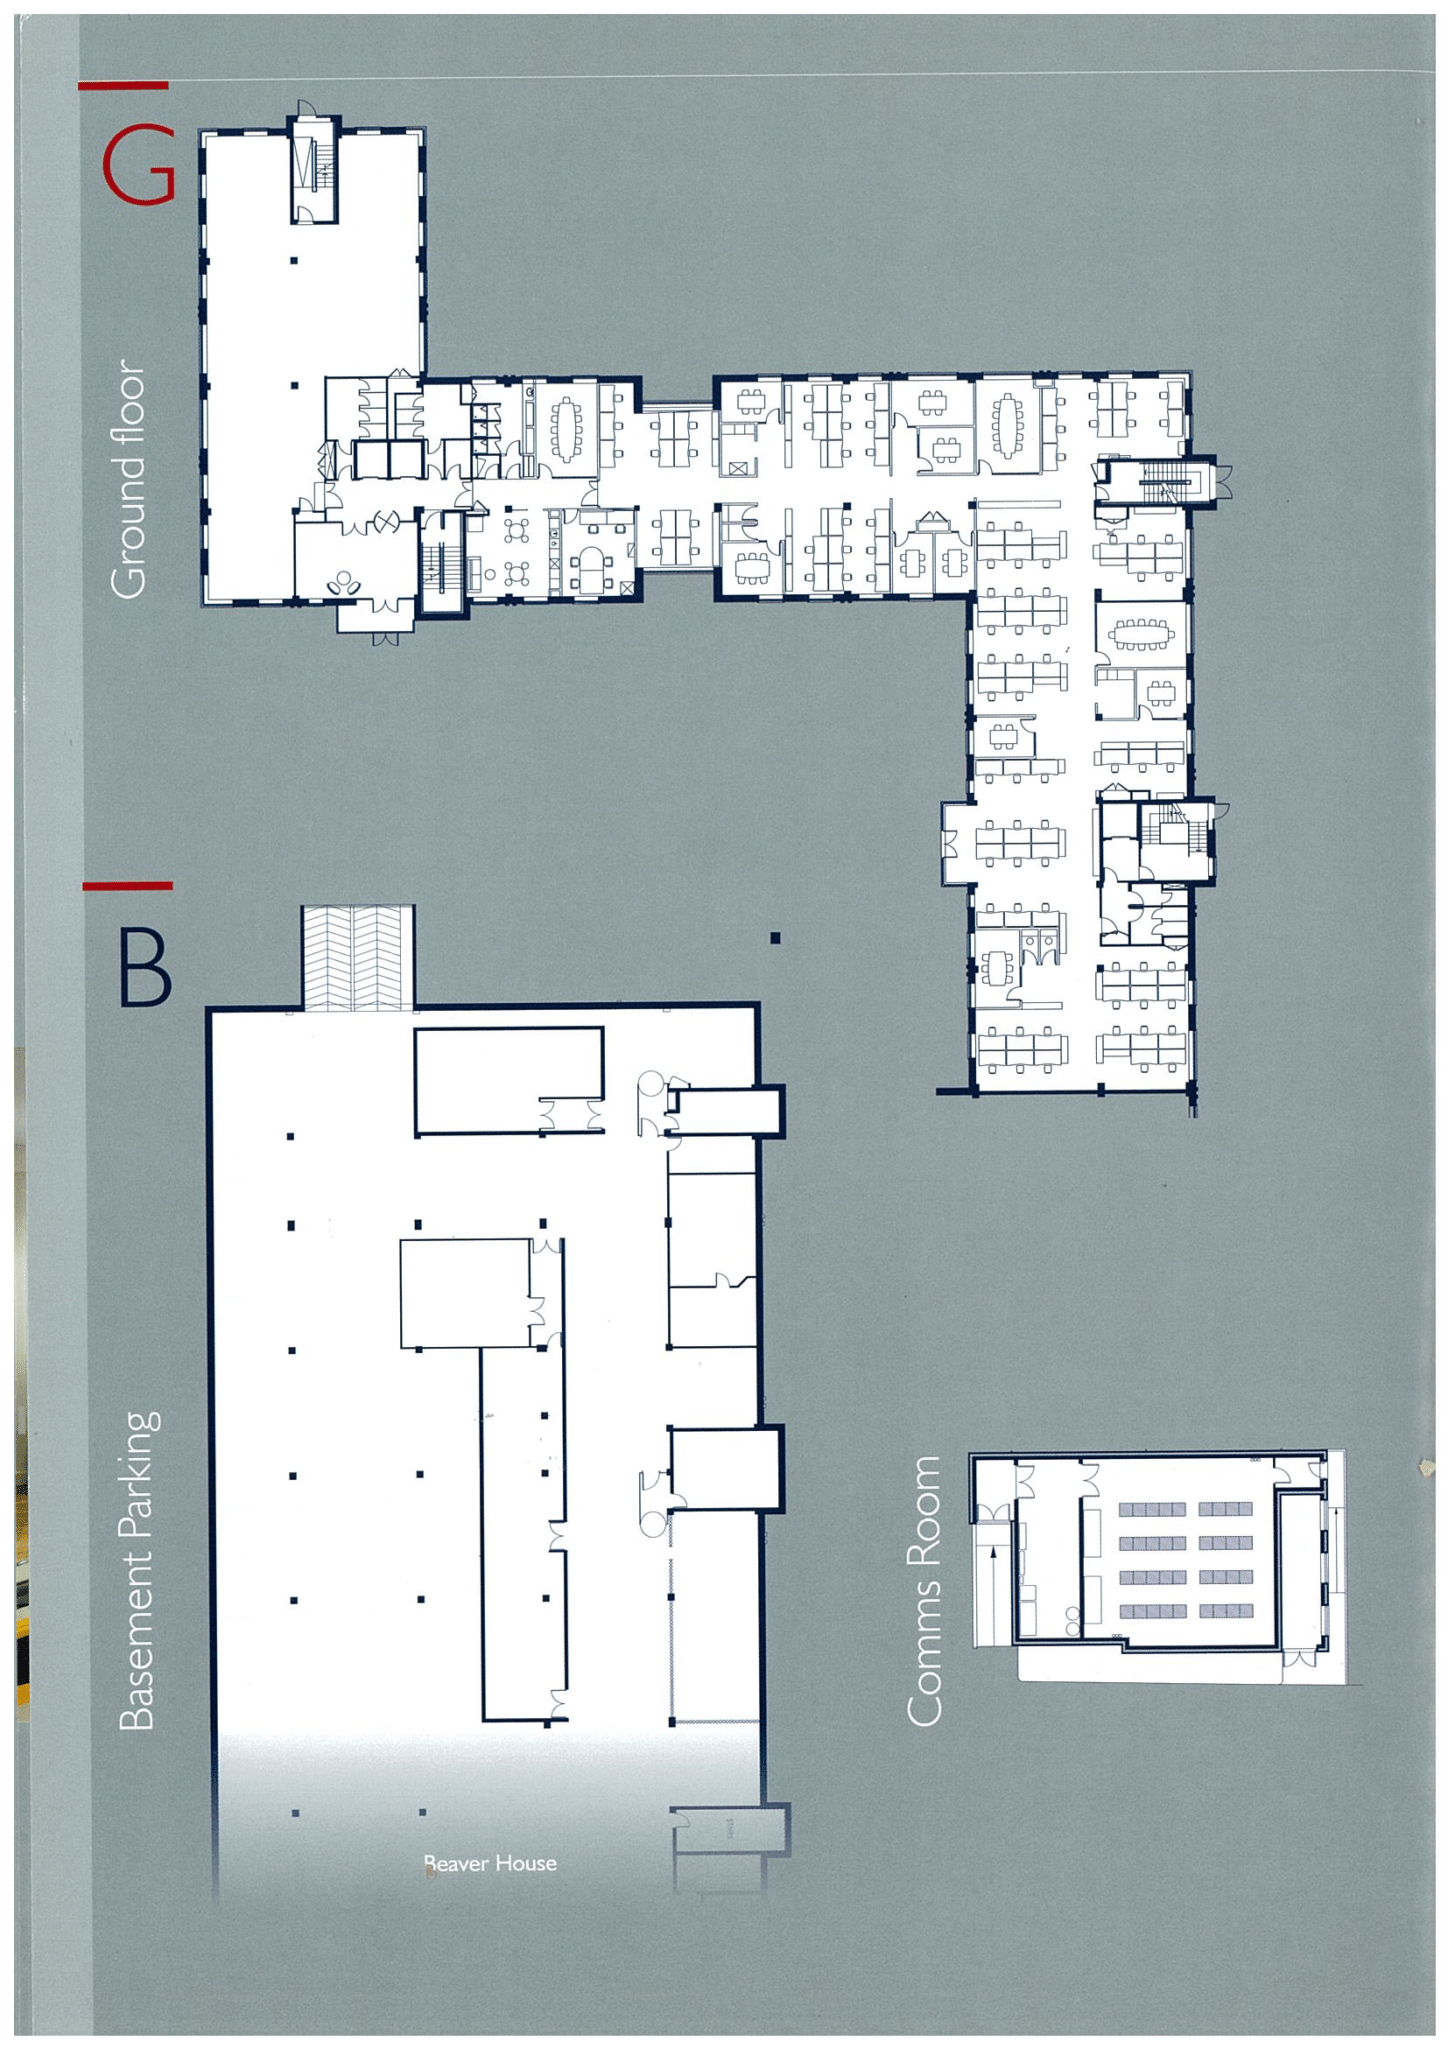 Ground Floor/Basement Parking